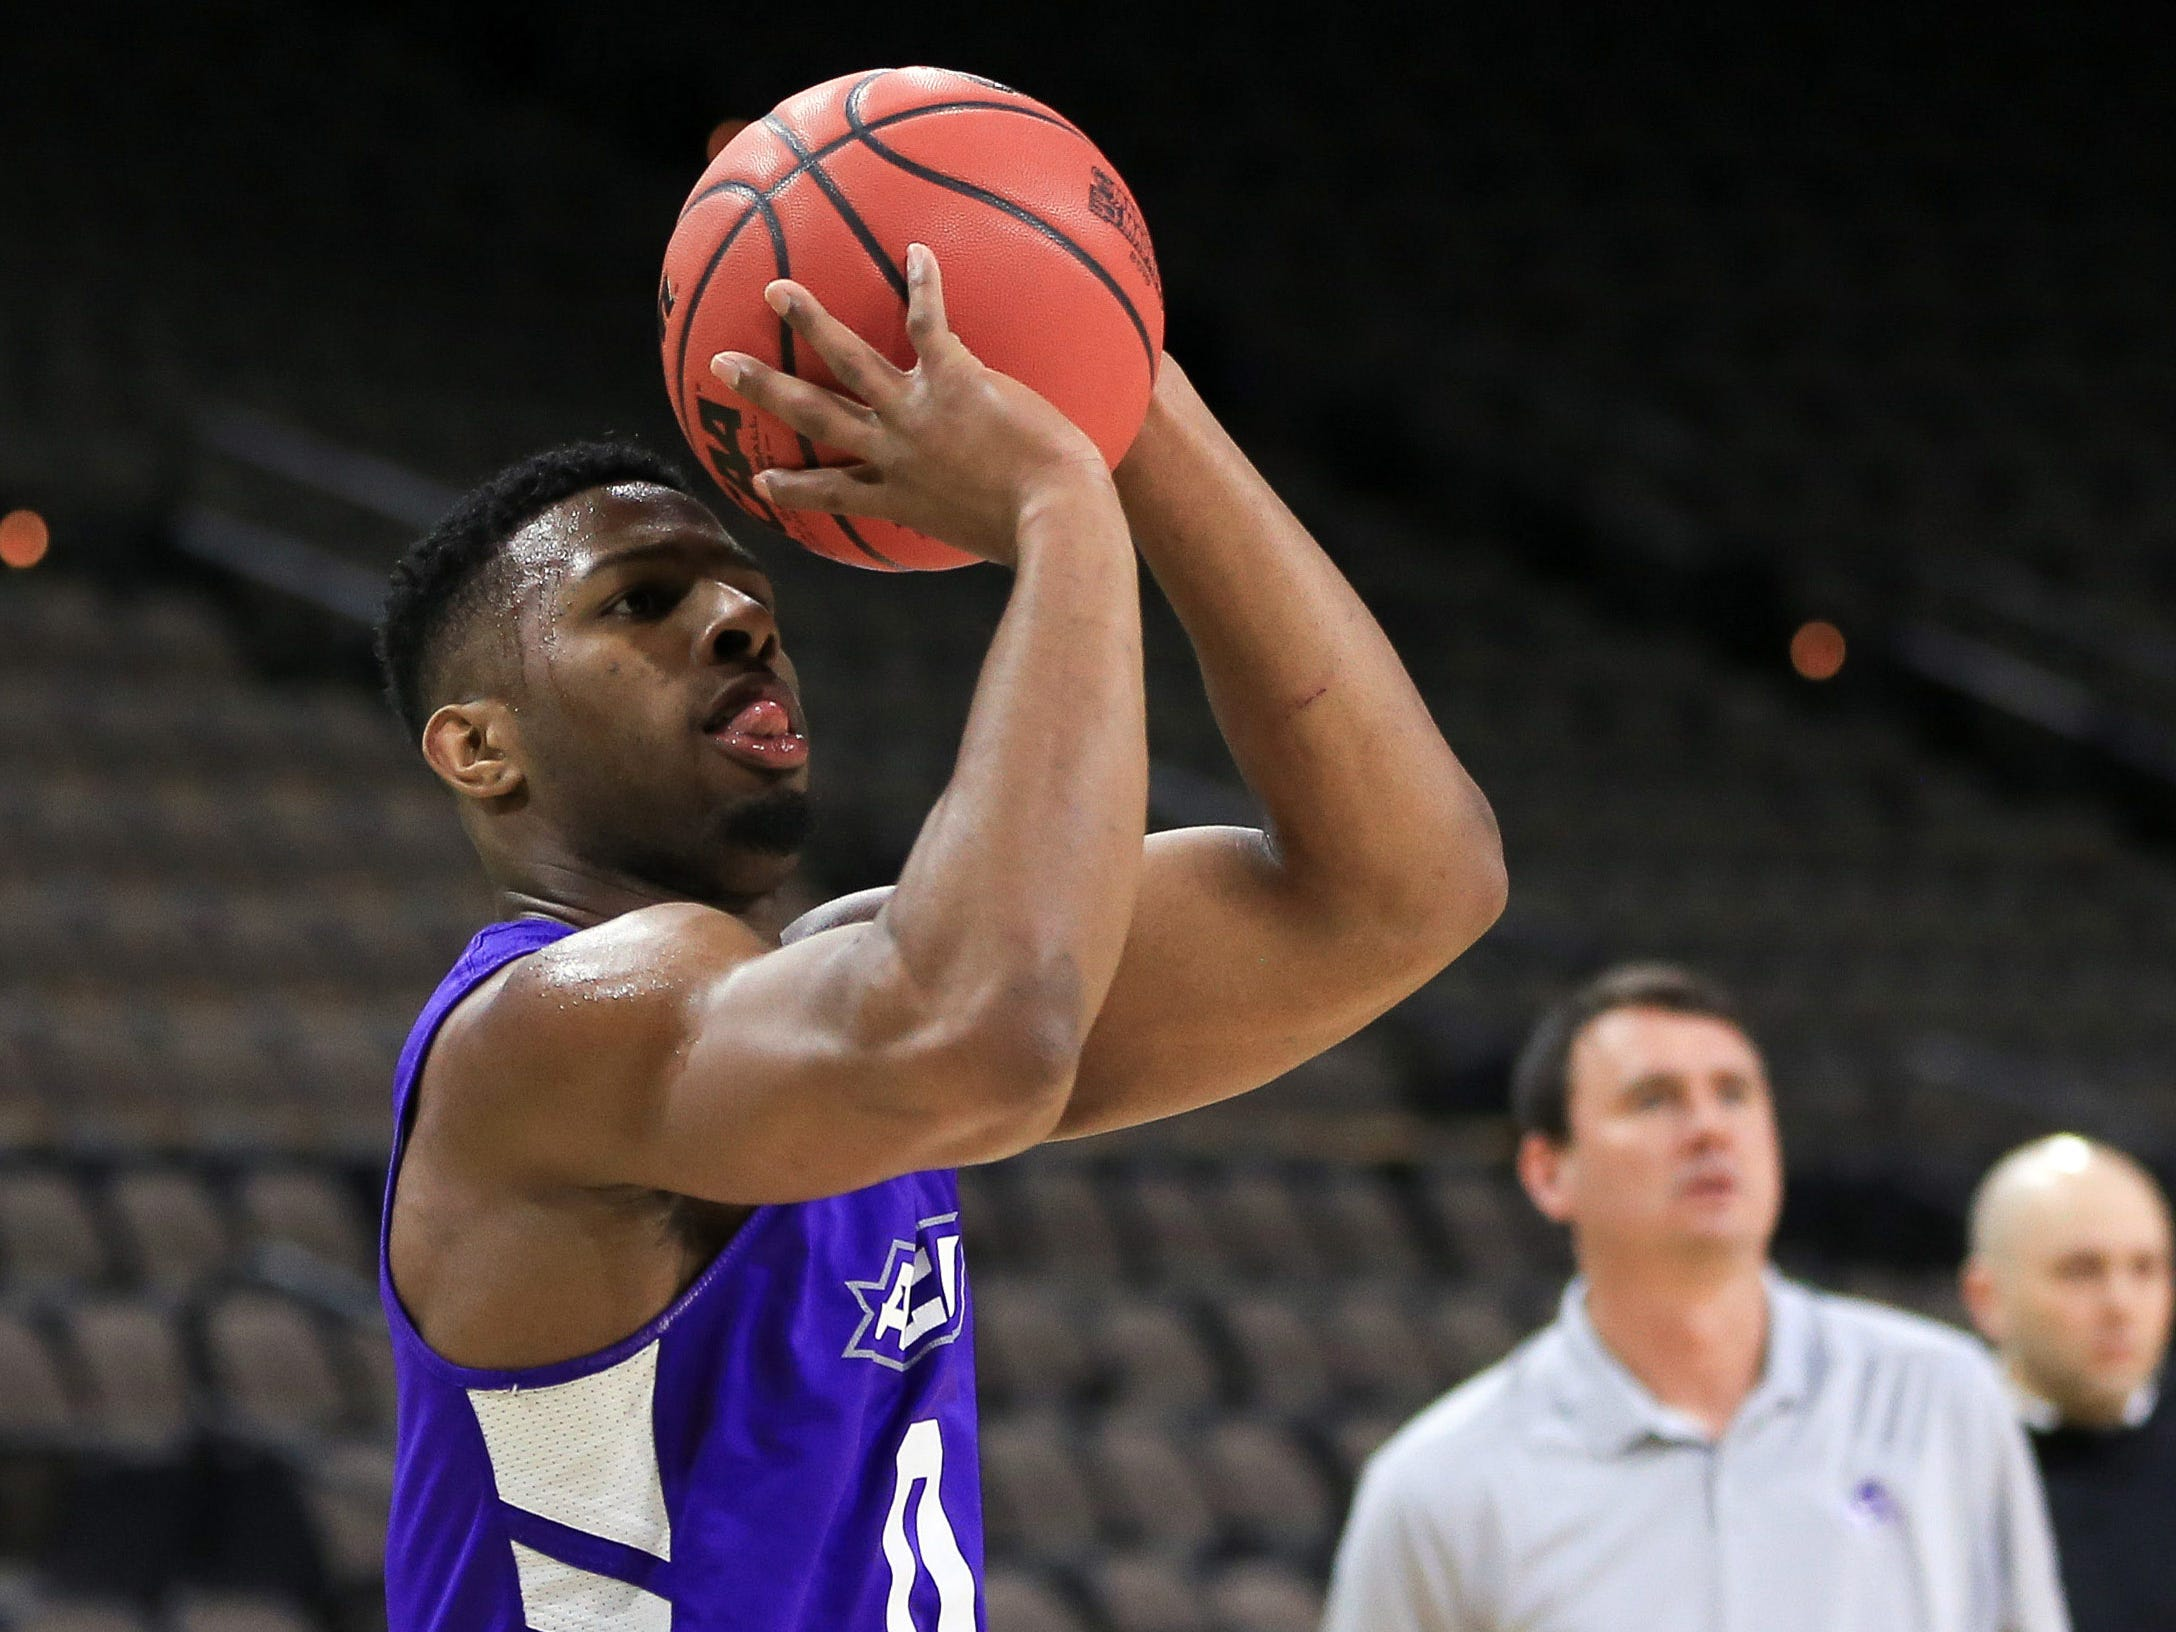 Mar 20, 2019; Jacksonville, FL, USA; Abilene Christian Wildcats guard Jaylen Franklin (0) shoots as head coach Joe Golding watches during practice day before the first round of the 2019 NCAA Tournament at Jacksonville Veterans Memorial Arena. Mandatory Credit: Matt Stamey-USA TODAY Sports